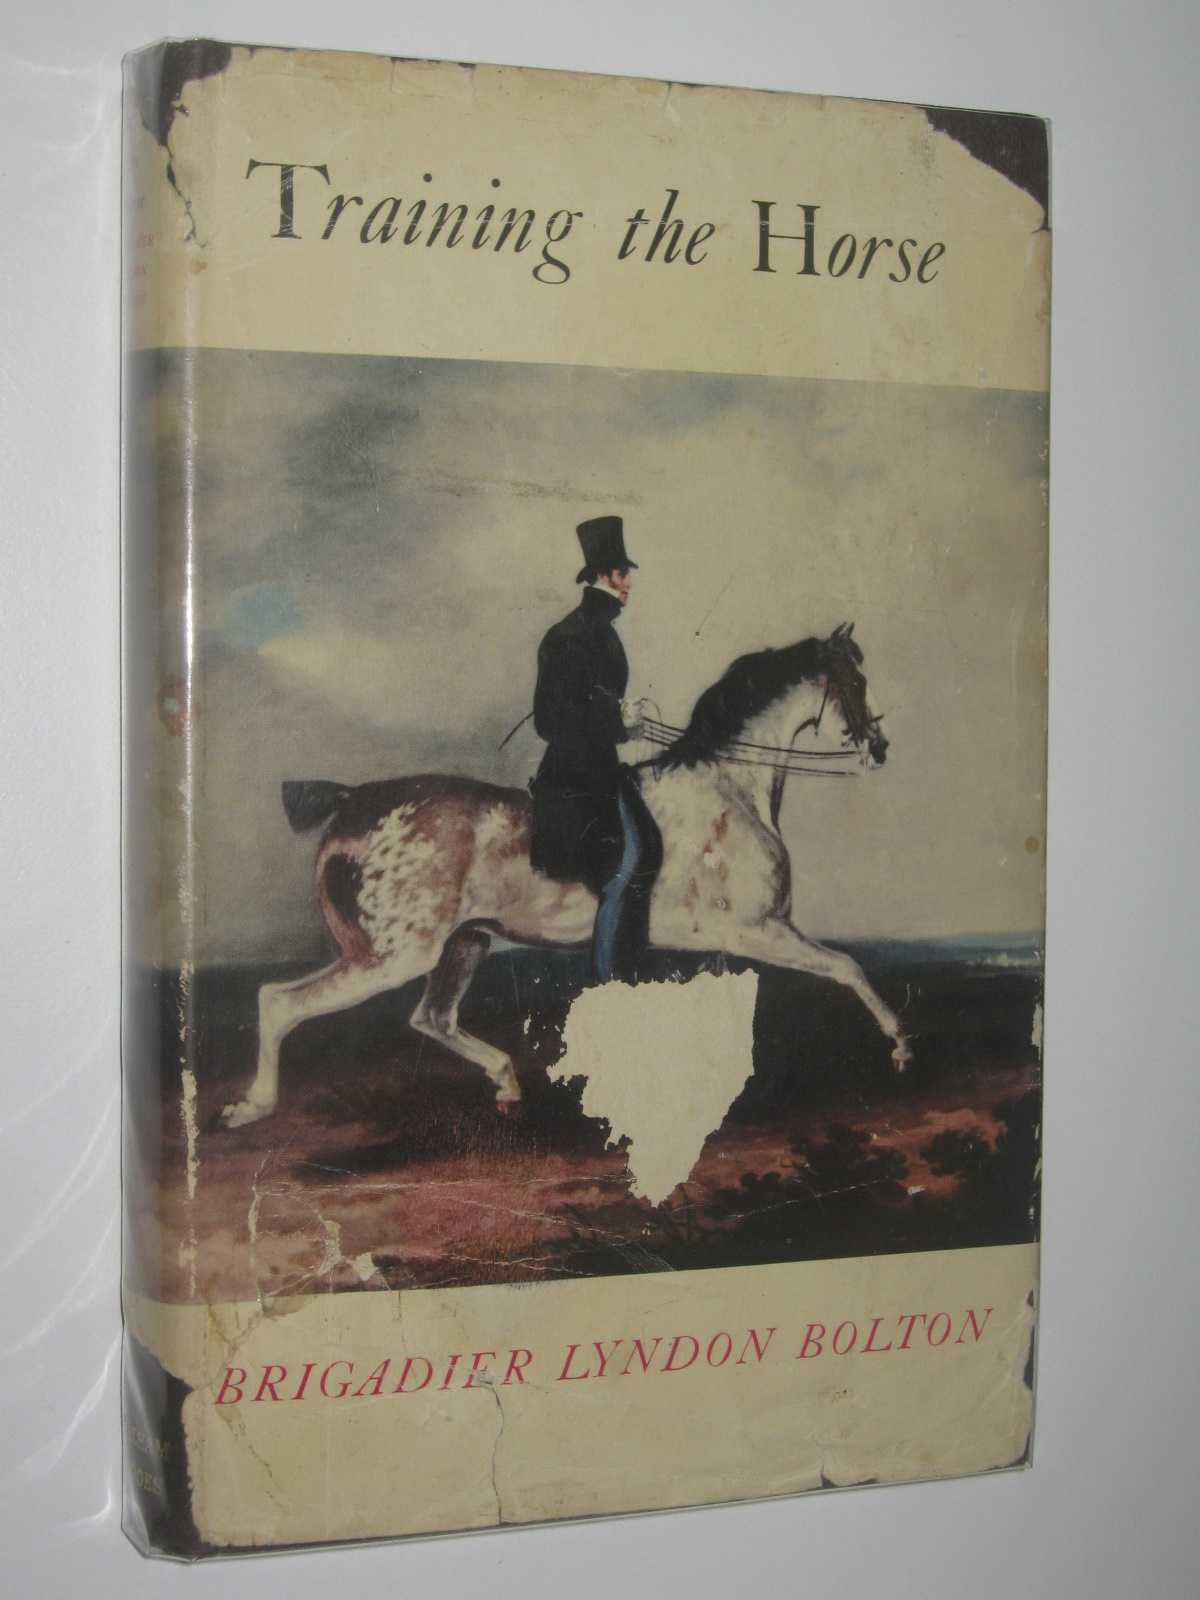 Training The Horse Thoughts On Riding By Bolton Brigadier Lyndon Very Good Hardcover 1964 Revised Edition Manyhills Books